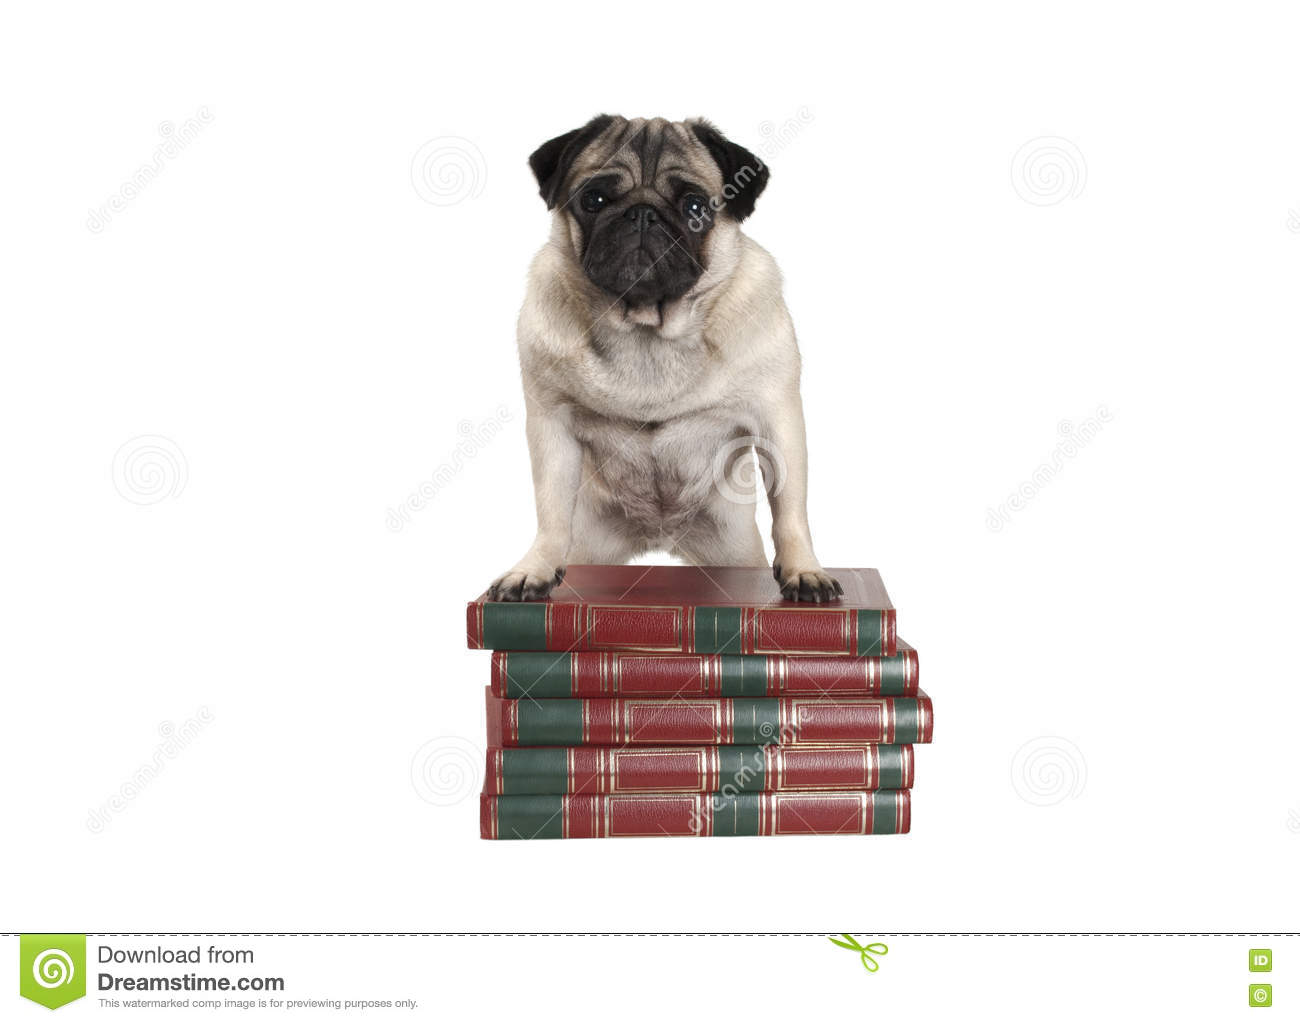 Cute little pug dog standing on books with front legs